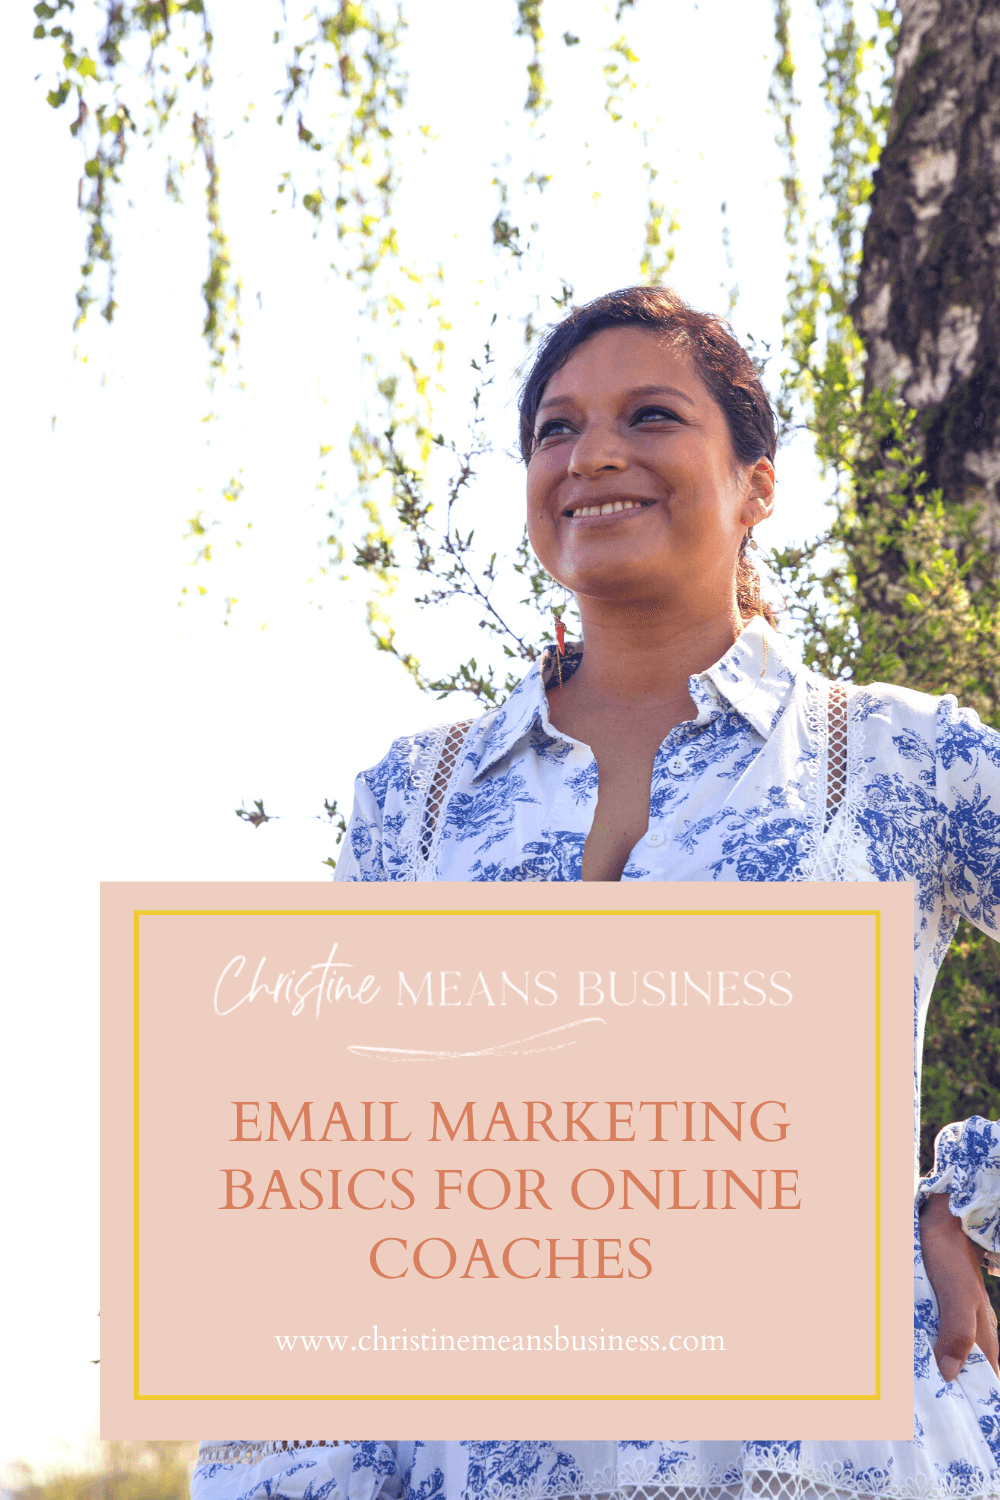 Email Marketing Basics for online coaches